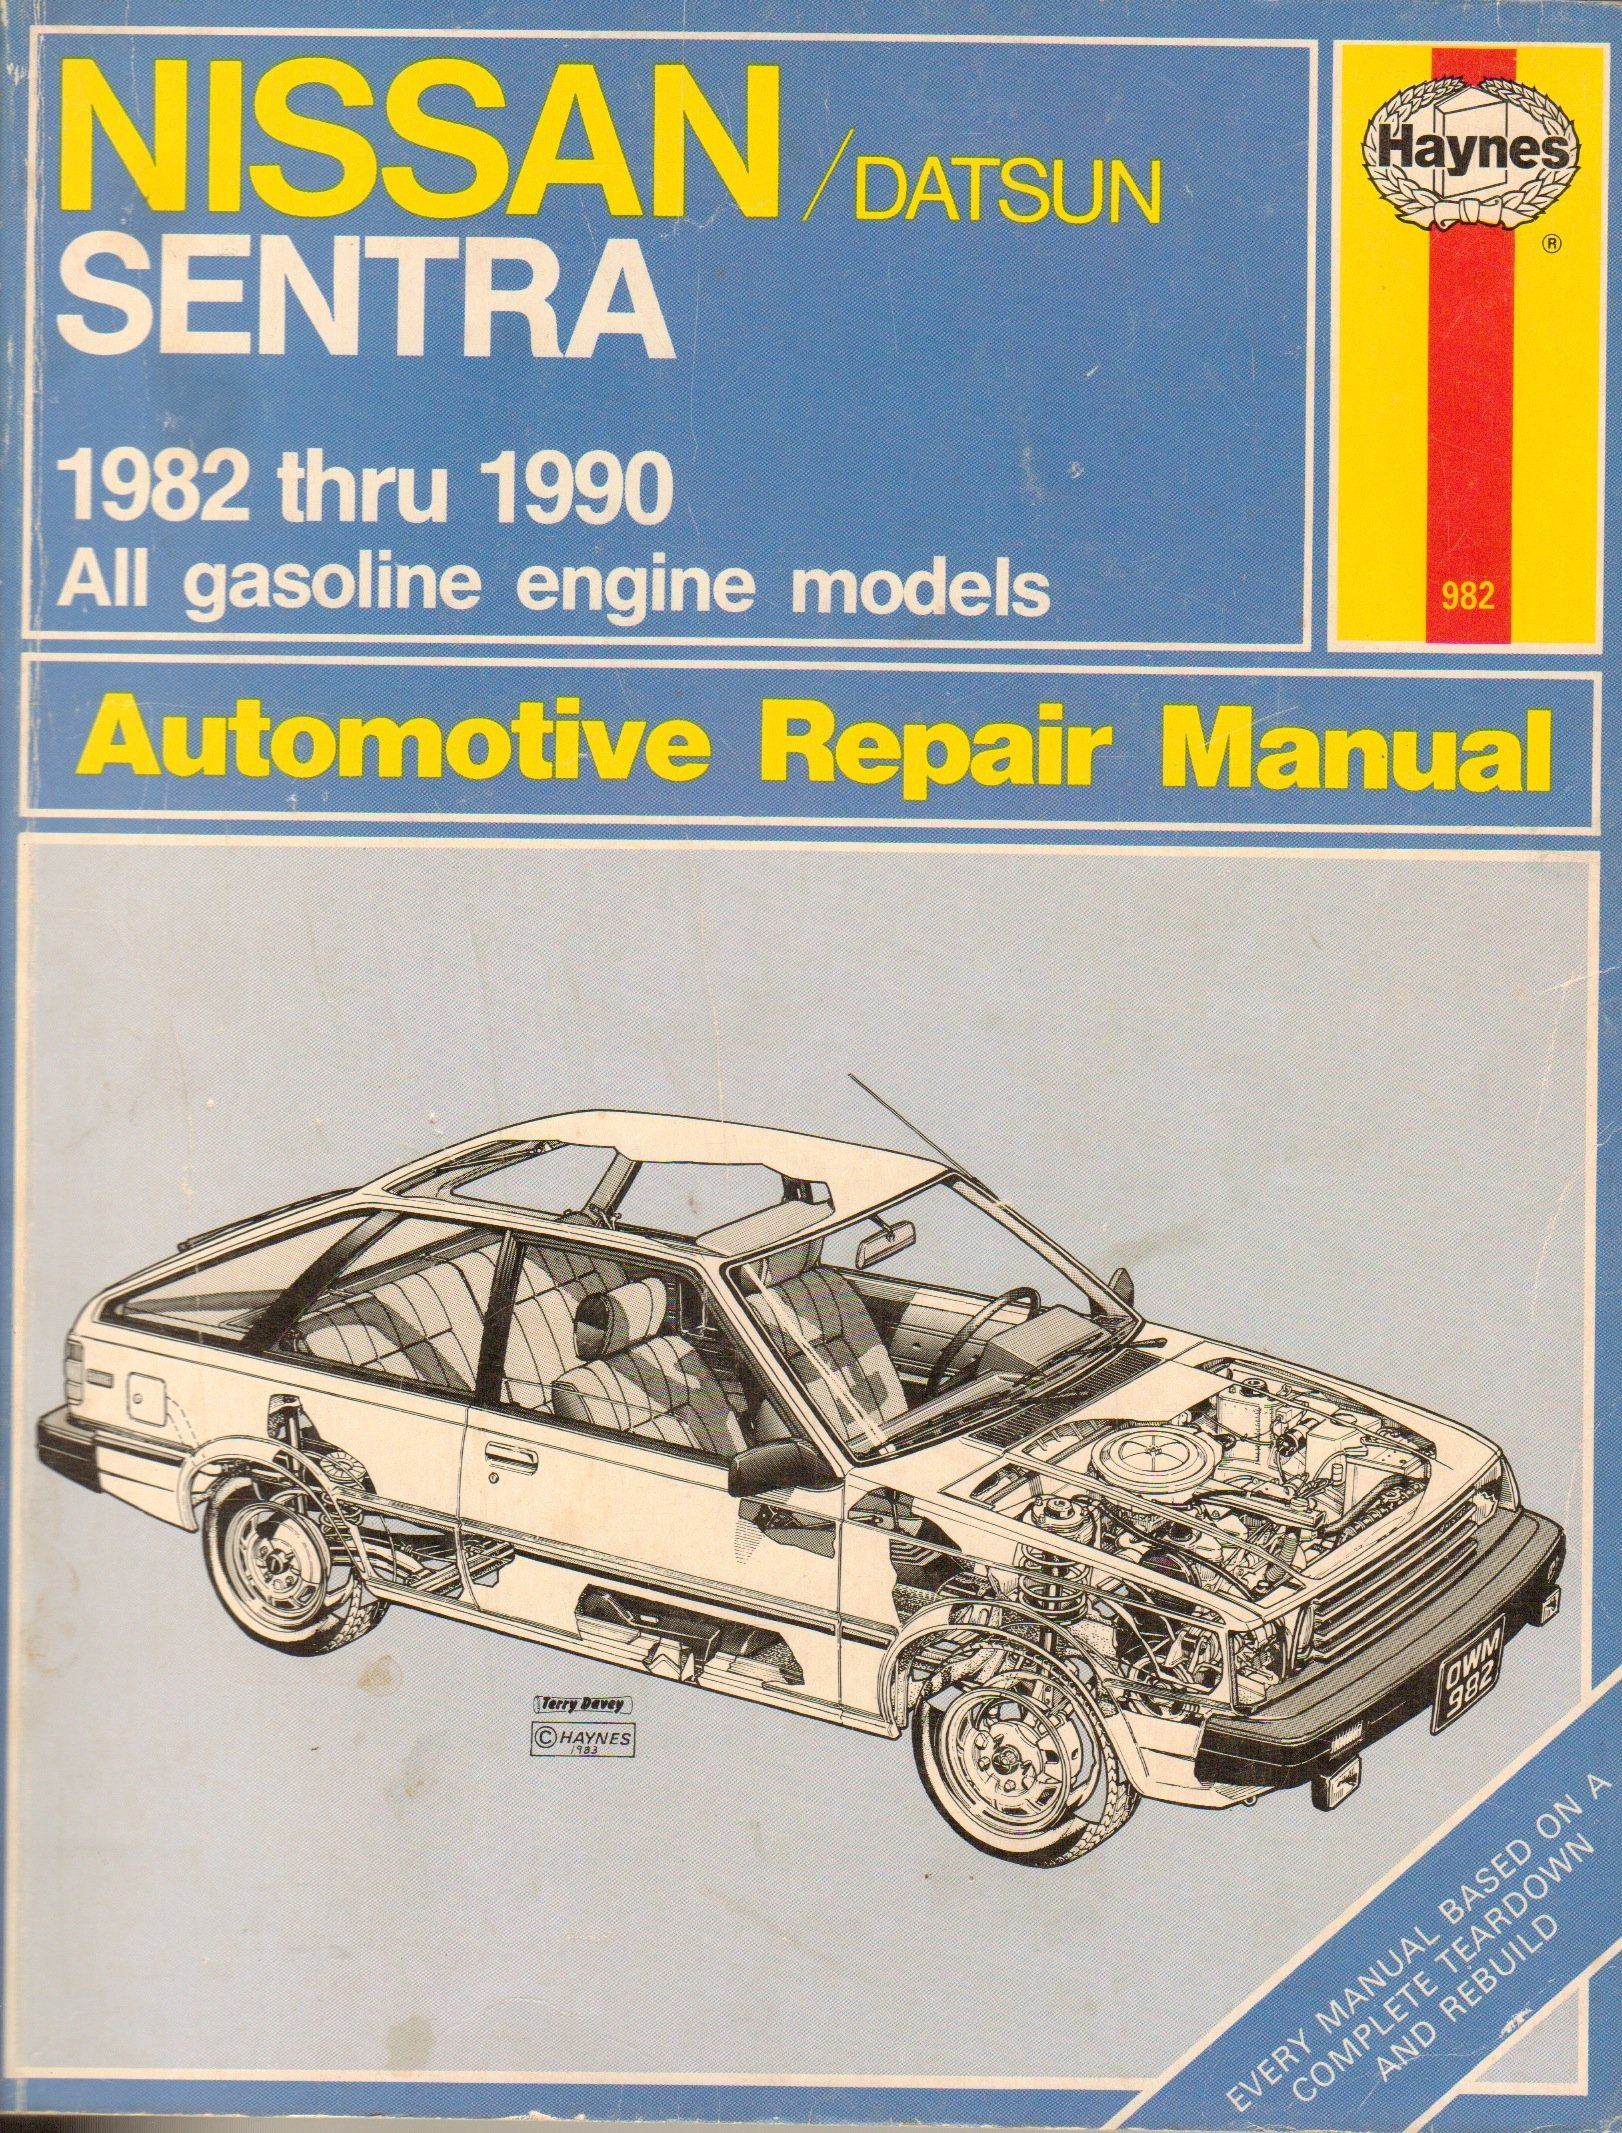 Nissan/Datsun Sentra 1982-1990 All Gasoline engine models Automotive Repair  Manual: Peter Strasman, John Harold Haynes: 9781850106753: Amazon.com: Books